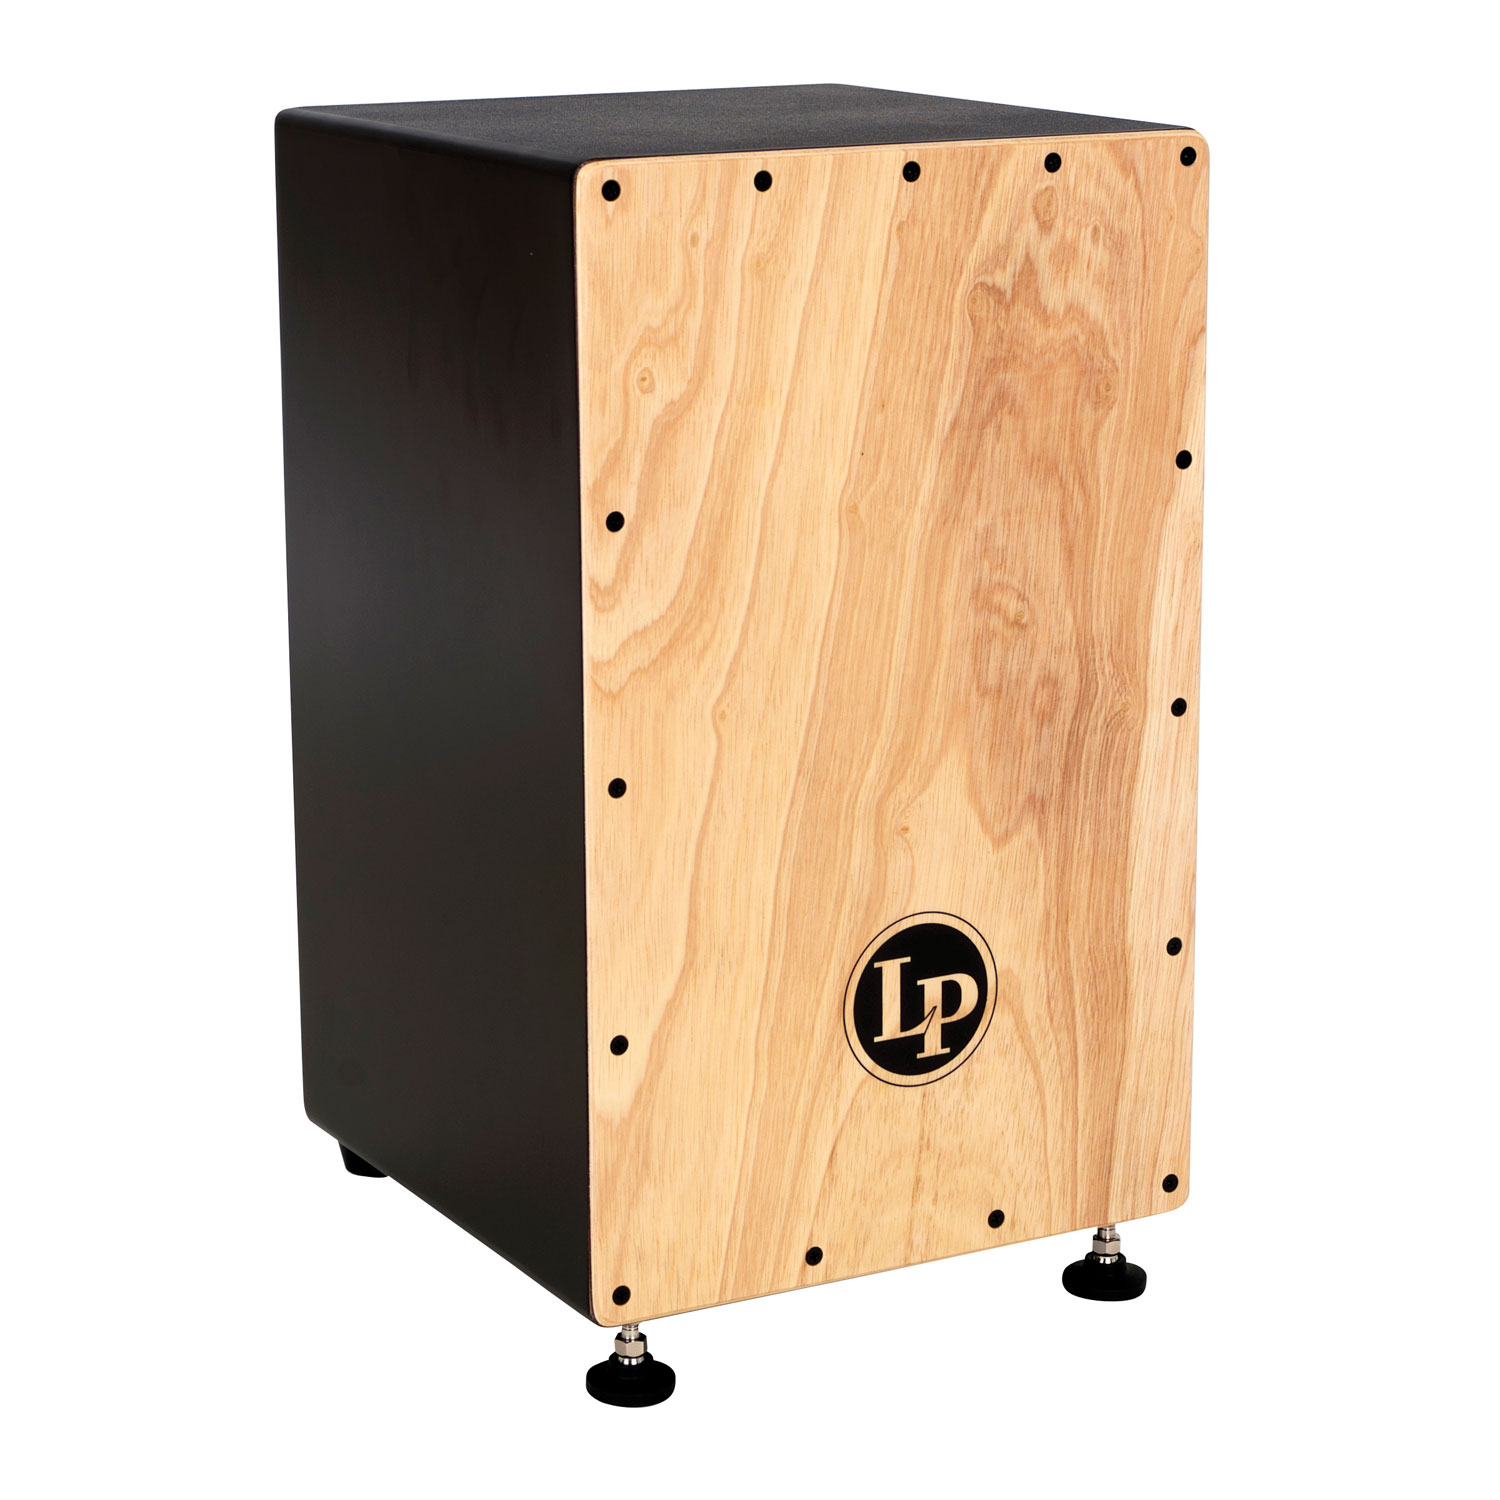 LP Cajon With Takean Tong Wood Surface